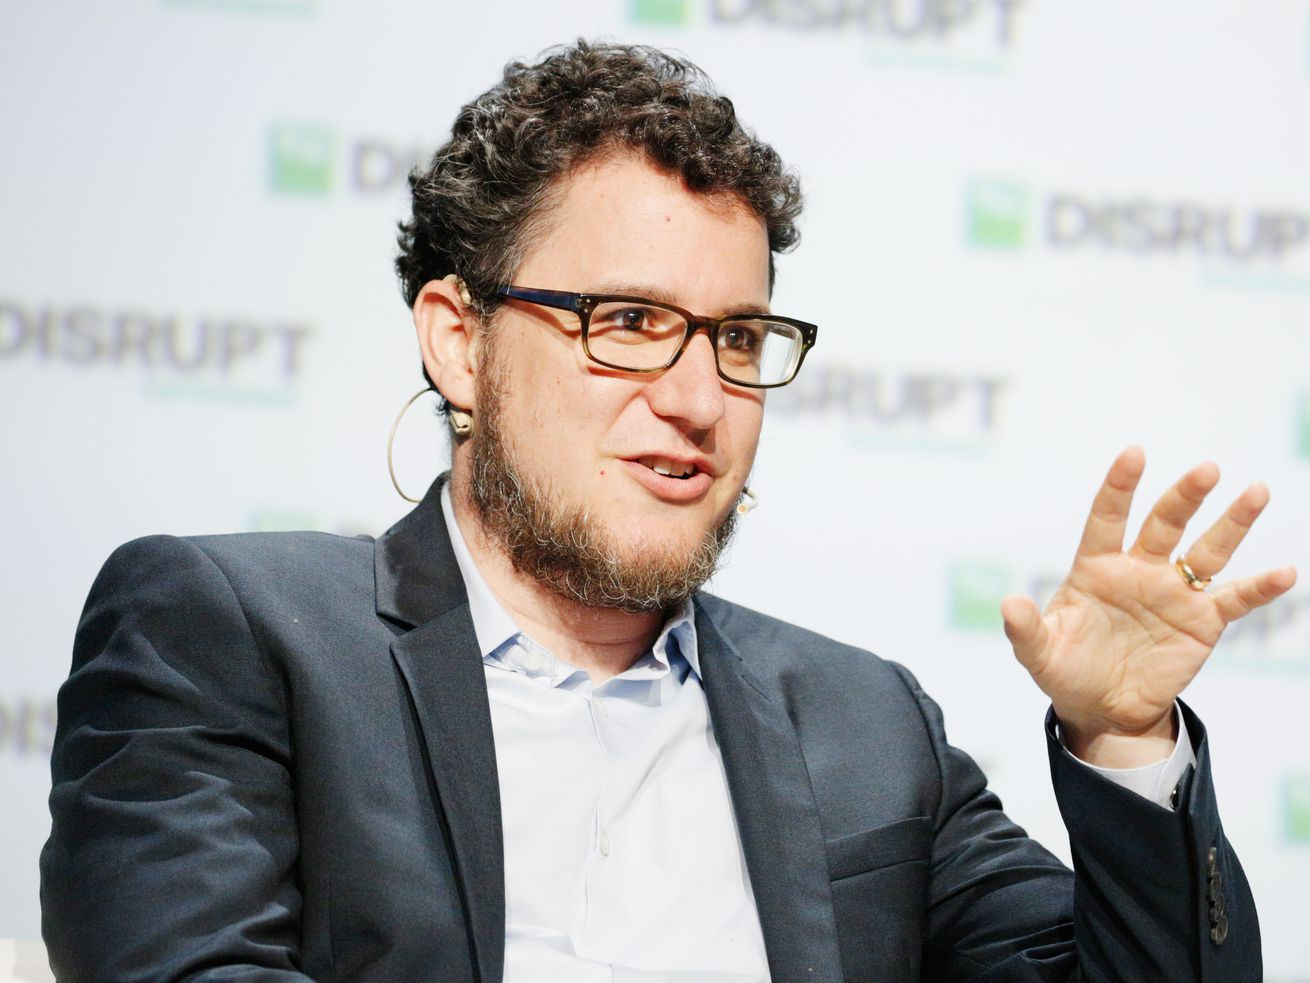 Long-Term Stock Exchange CEO Eric Ries.